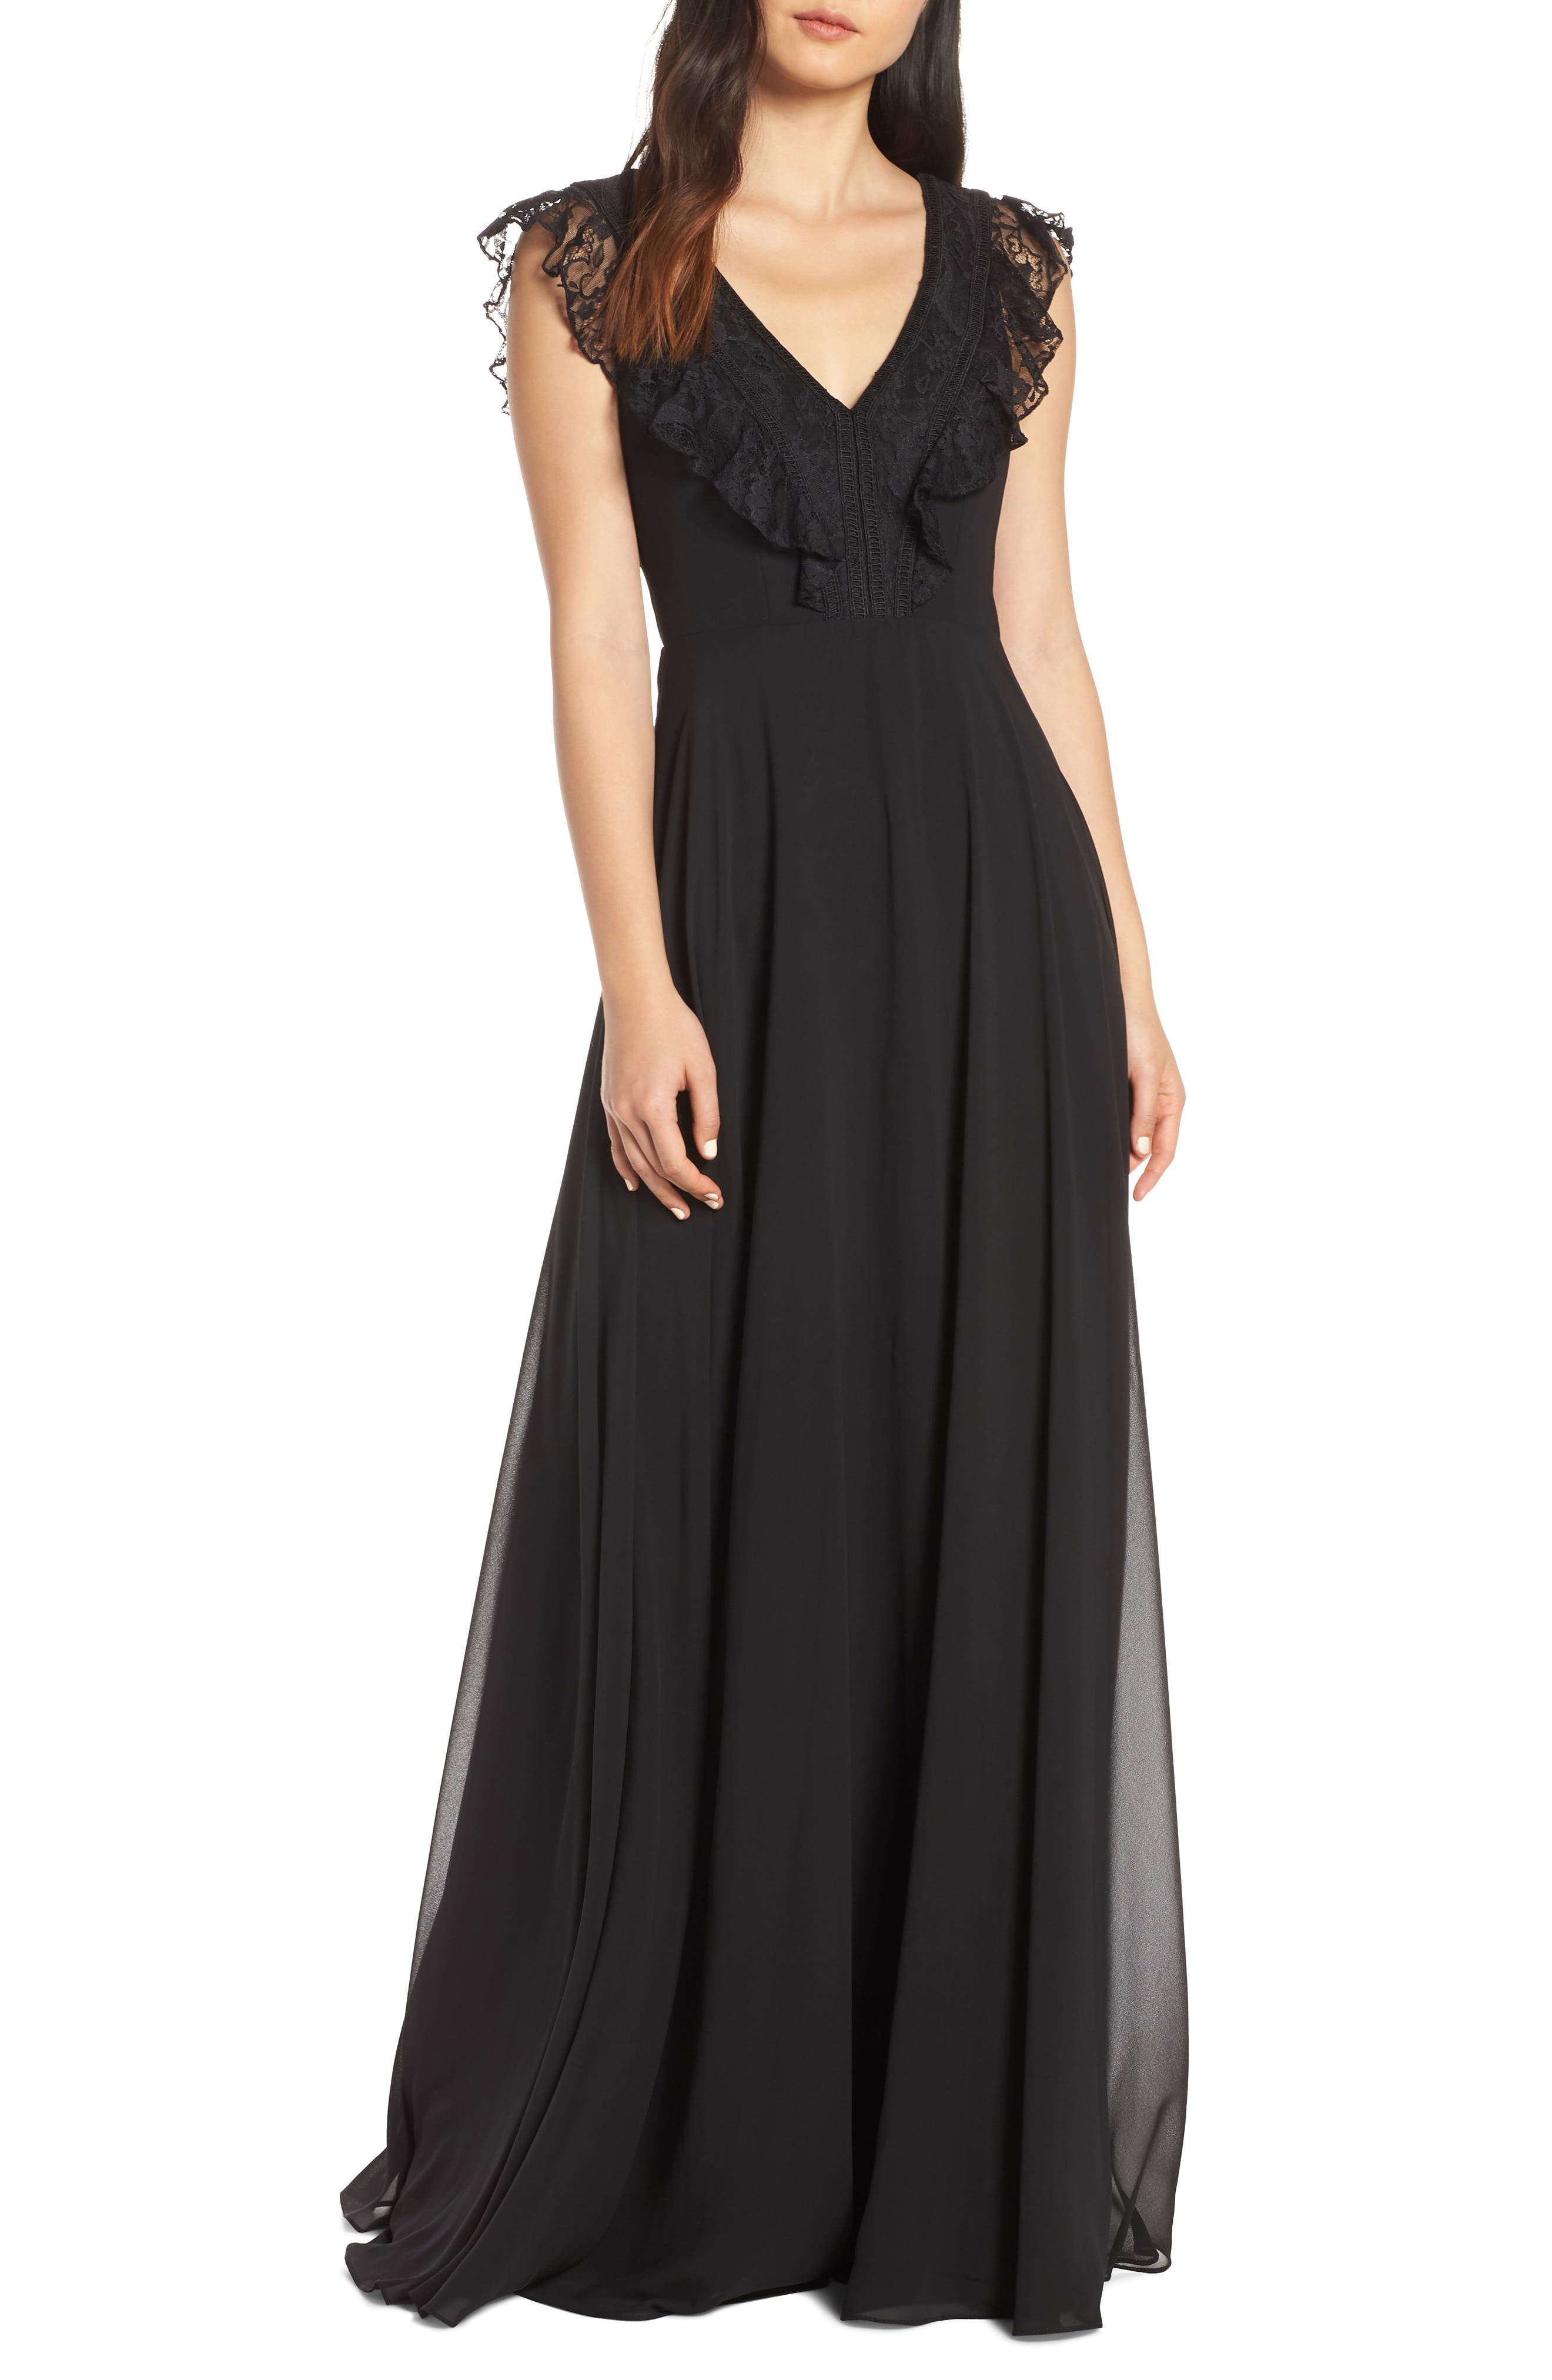 Hayley Paige Occasions Lace V-Neck Chiffon Evening Dress, Black